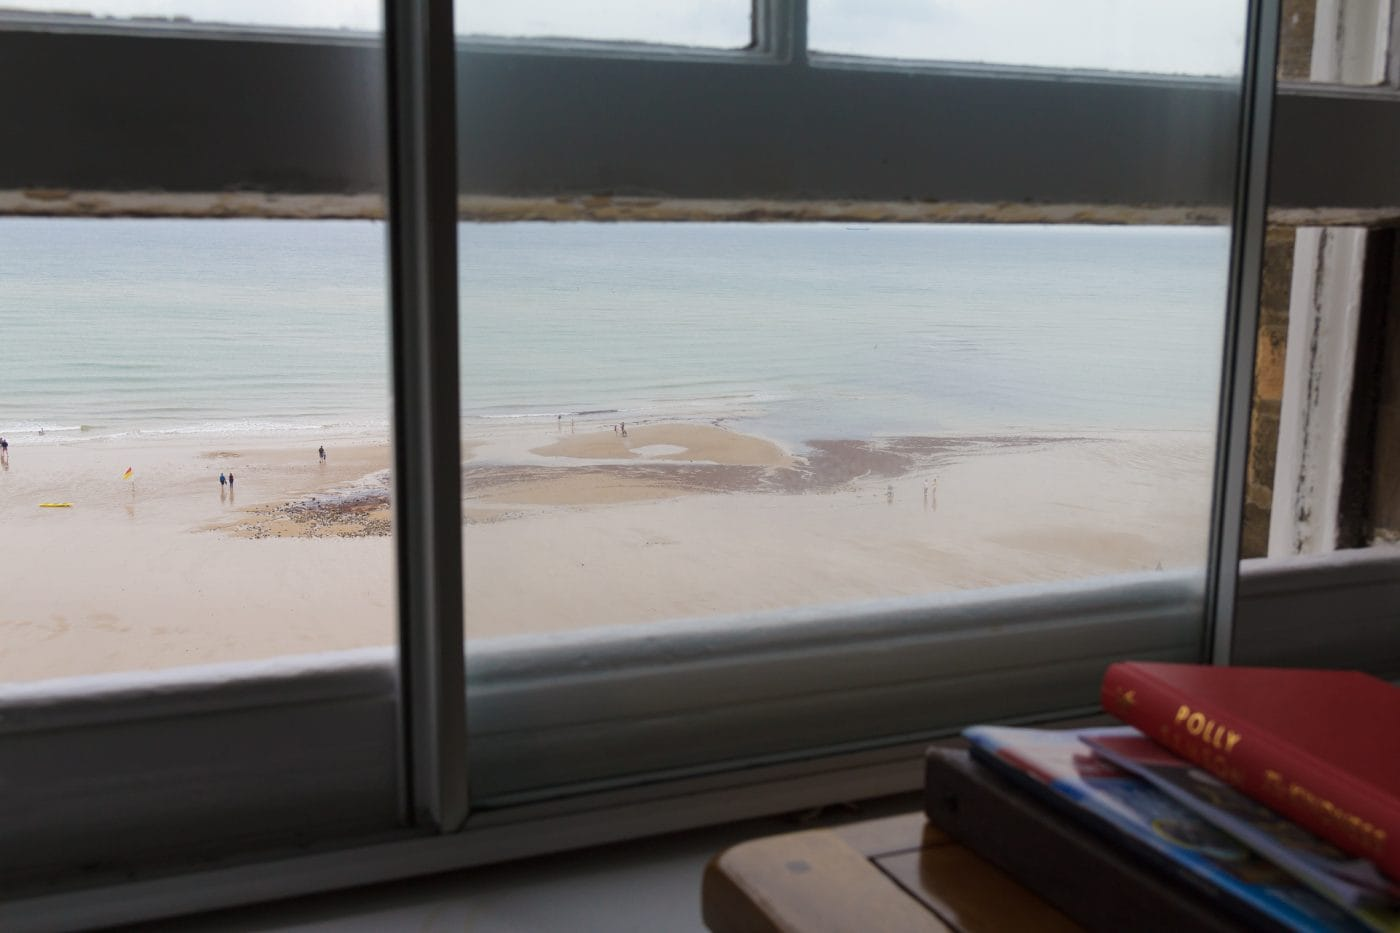 The Nothern sea from a window